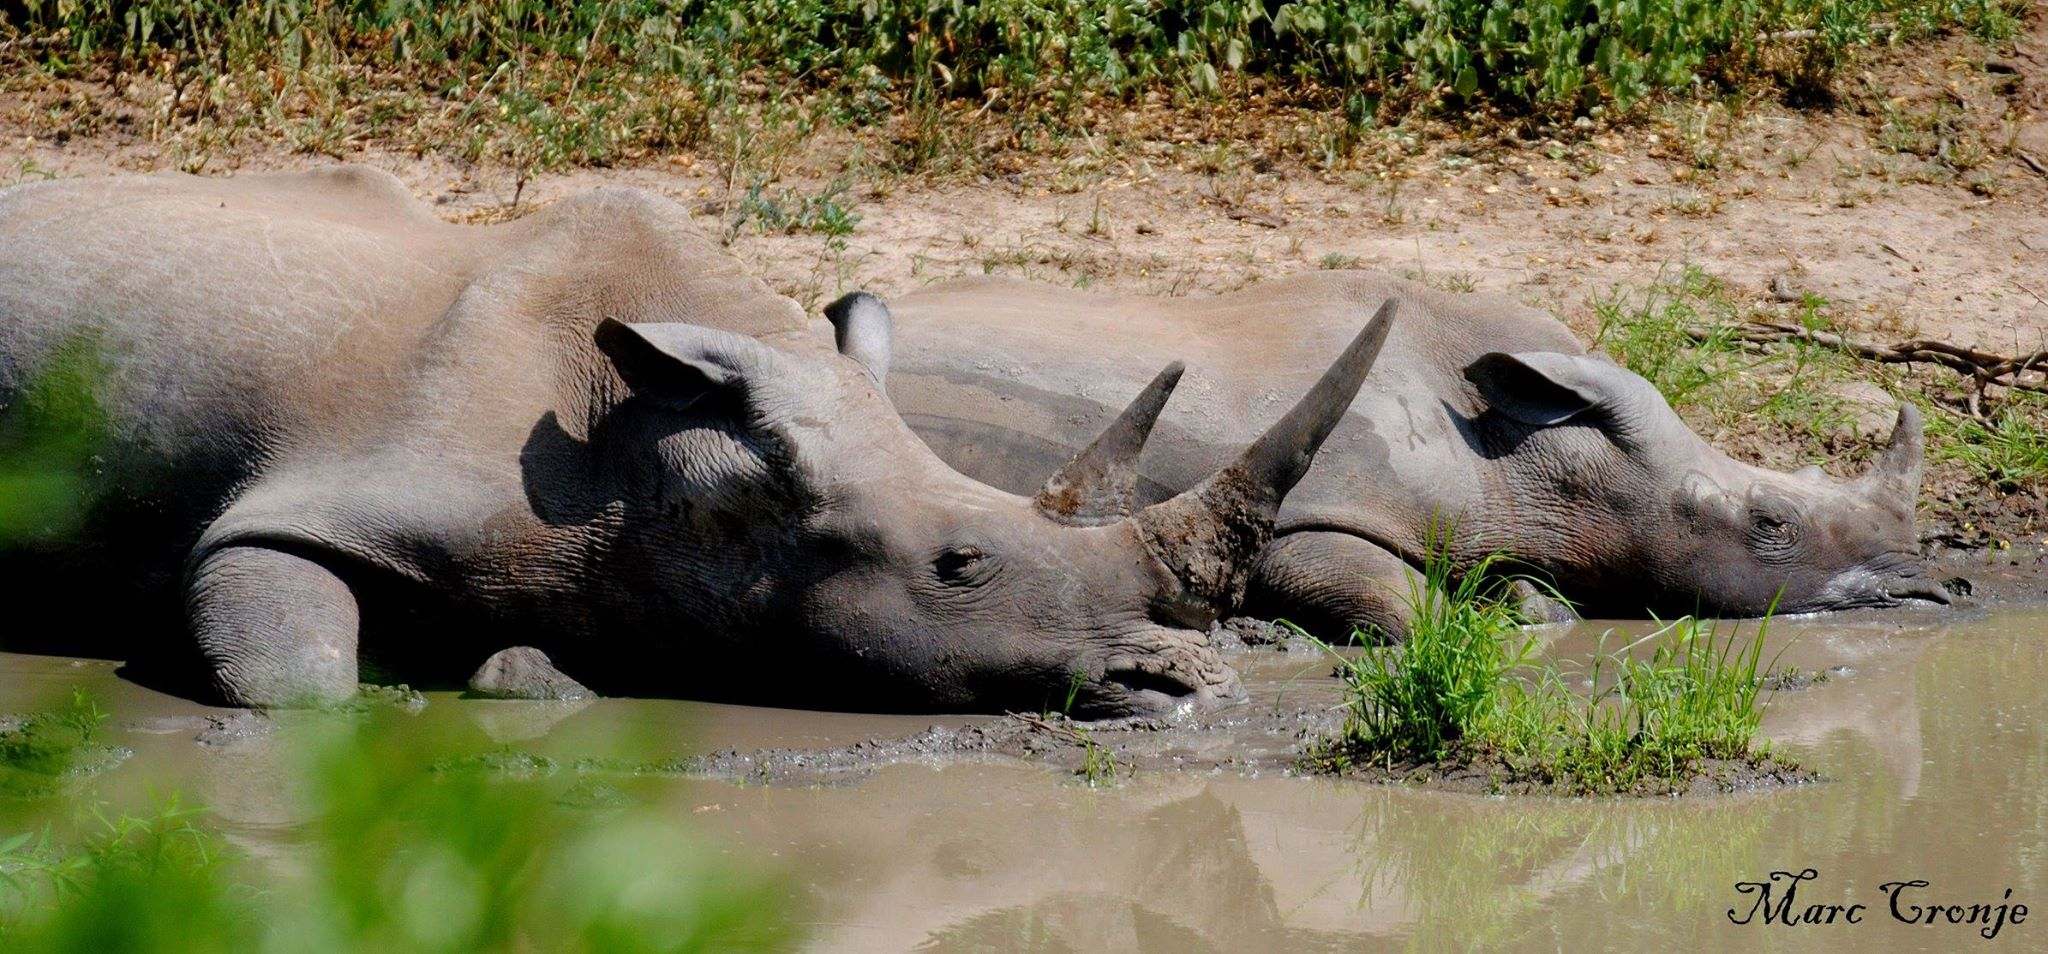 A white rhino mother showing her baby some of the finer things in life - like napping in a cool mud hole on Kruger National Park, South Africa. Image: ©Marc Cronje Independent Field Guide. Kruger Park, South Africa